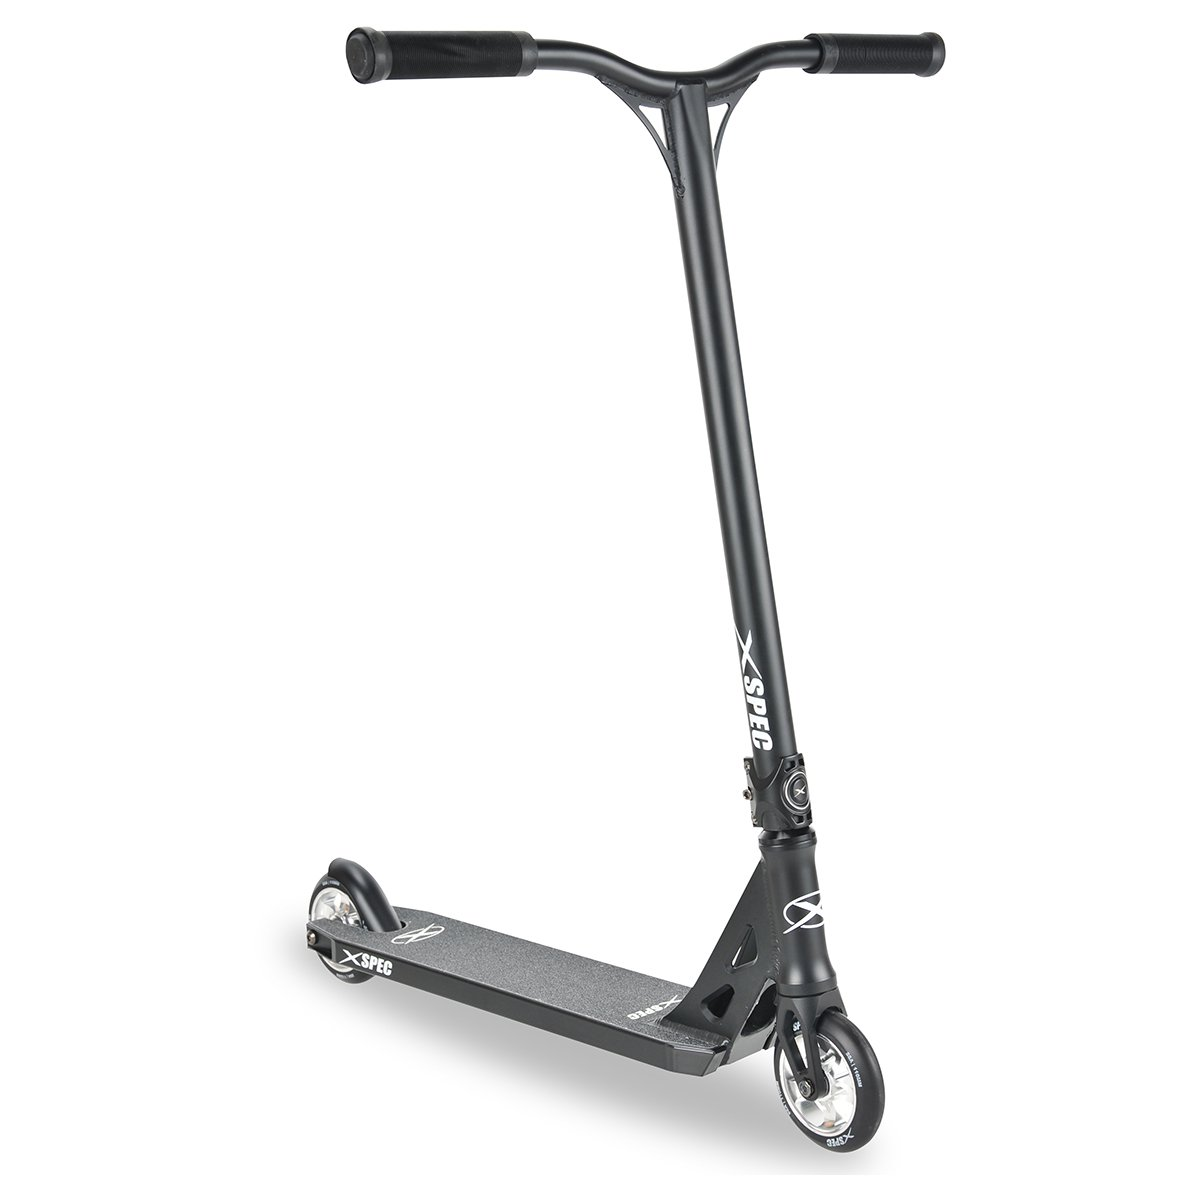 Xspec 912 Pro Stunt Kick Scooter w/Strong 6061 Aluminum Deck - 220lb Weight Limit - Chromoly Handle Bars & TPR Rubber Hand Grips - ABEC-7 Bearing by Xspec